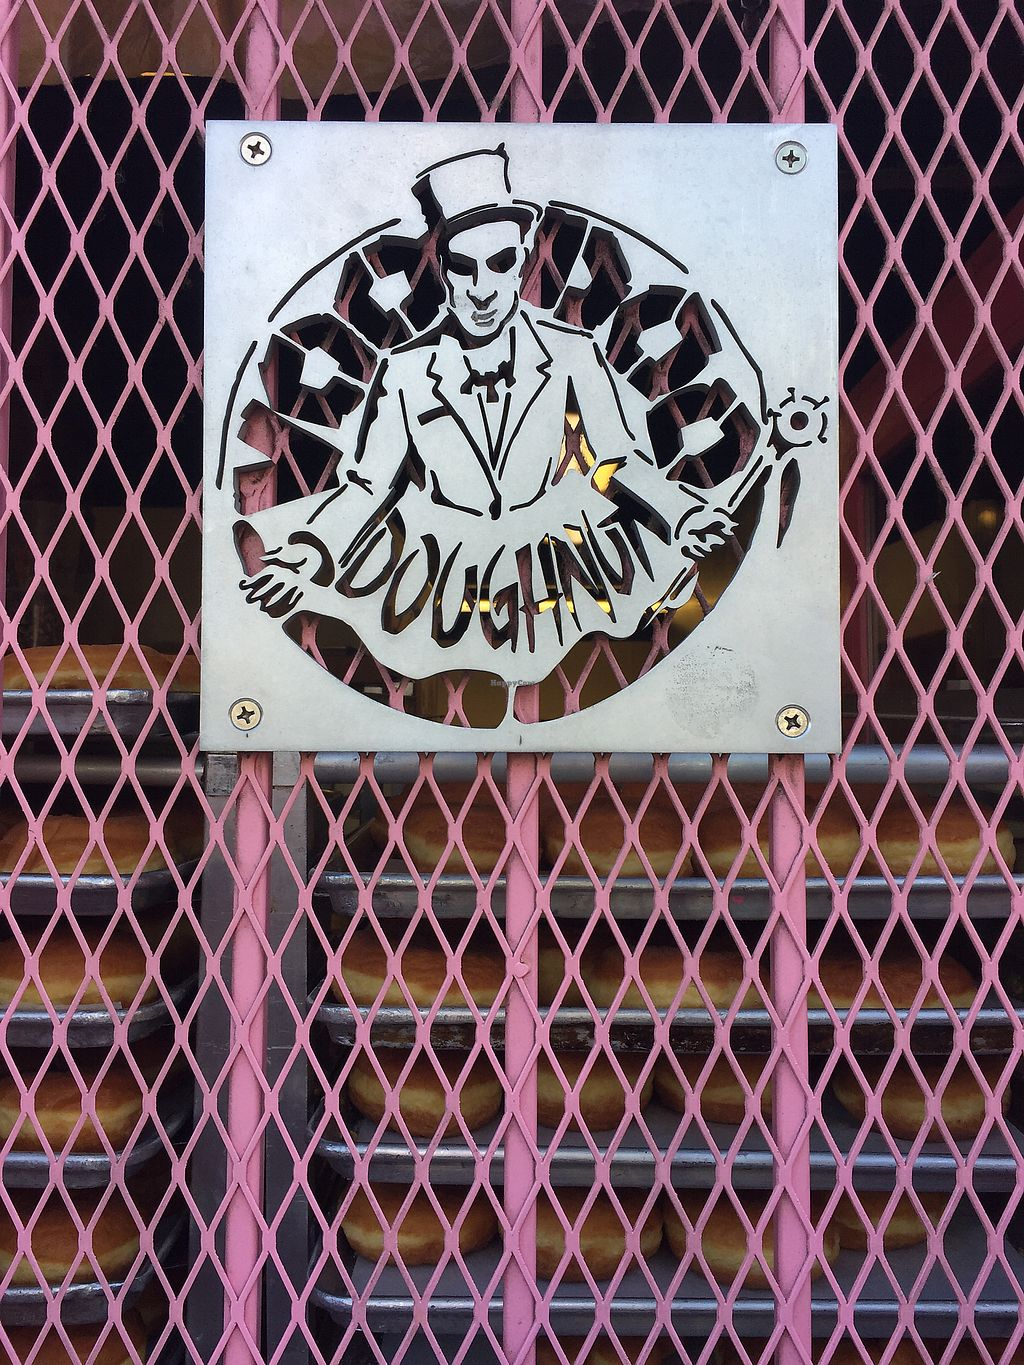 """Photo of Voodoo Doughnut  by <a href=""""/members/profile/TheVeganNarwhal"""">TheVeganNarwhal</a> <br/>VooDoo donuts <br/> February 12, 2018  - <a href='/contact/abuse/image/33103/358229'>Report</a>"""